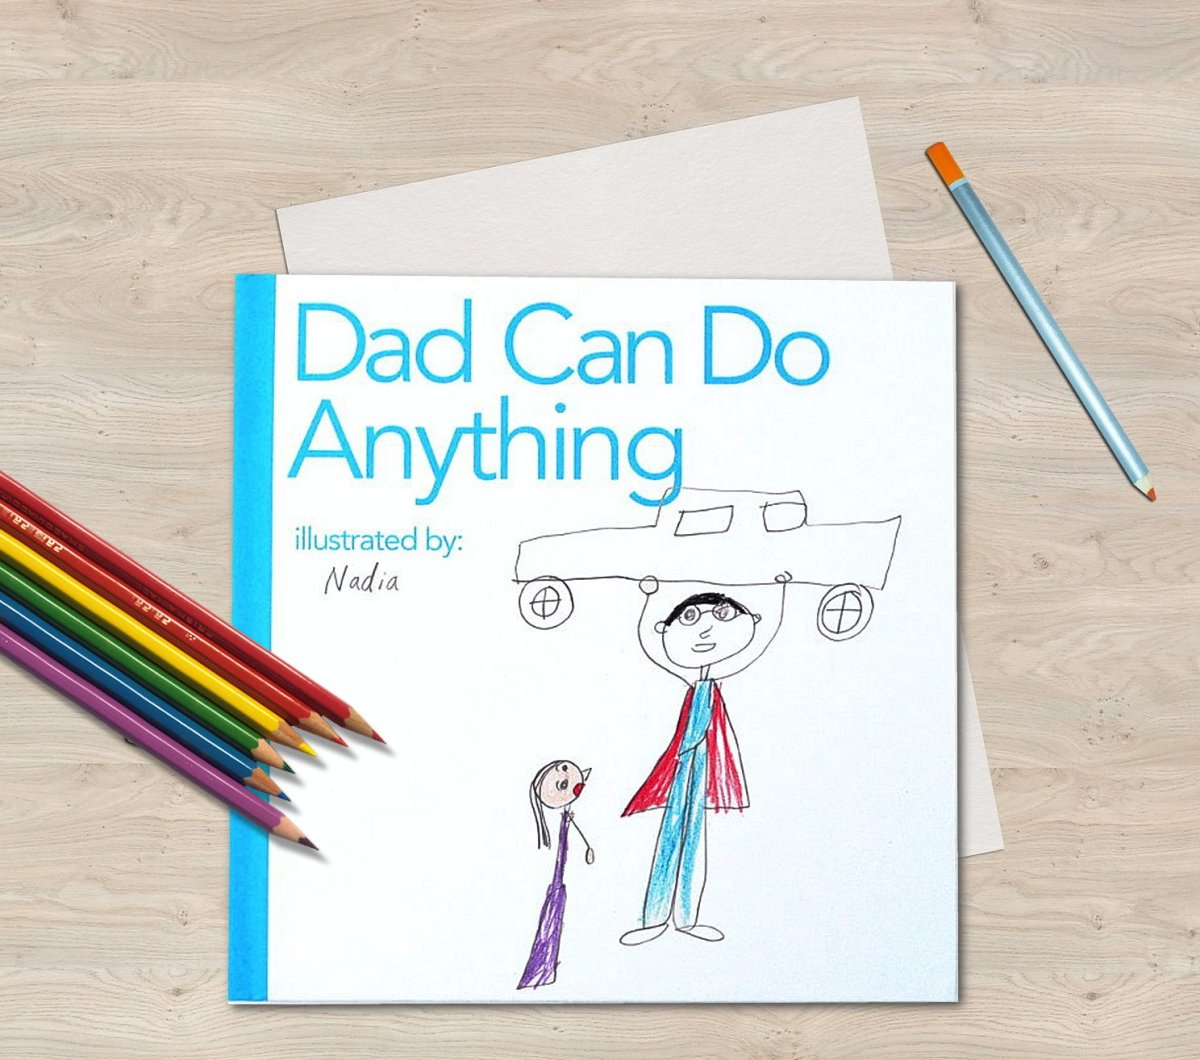 Kids can illustrate this clever book about a hero dad from cover to cover and give it as a Father's Day gift.